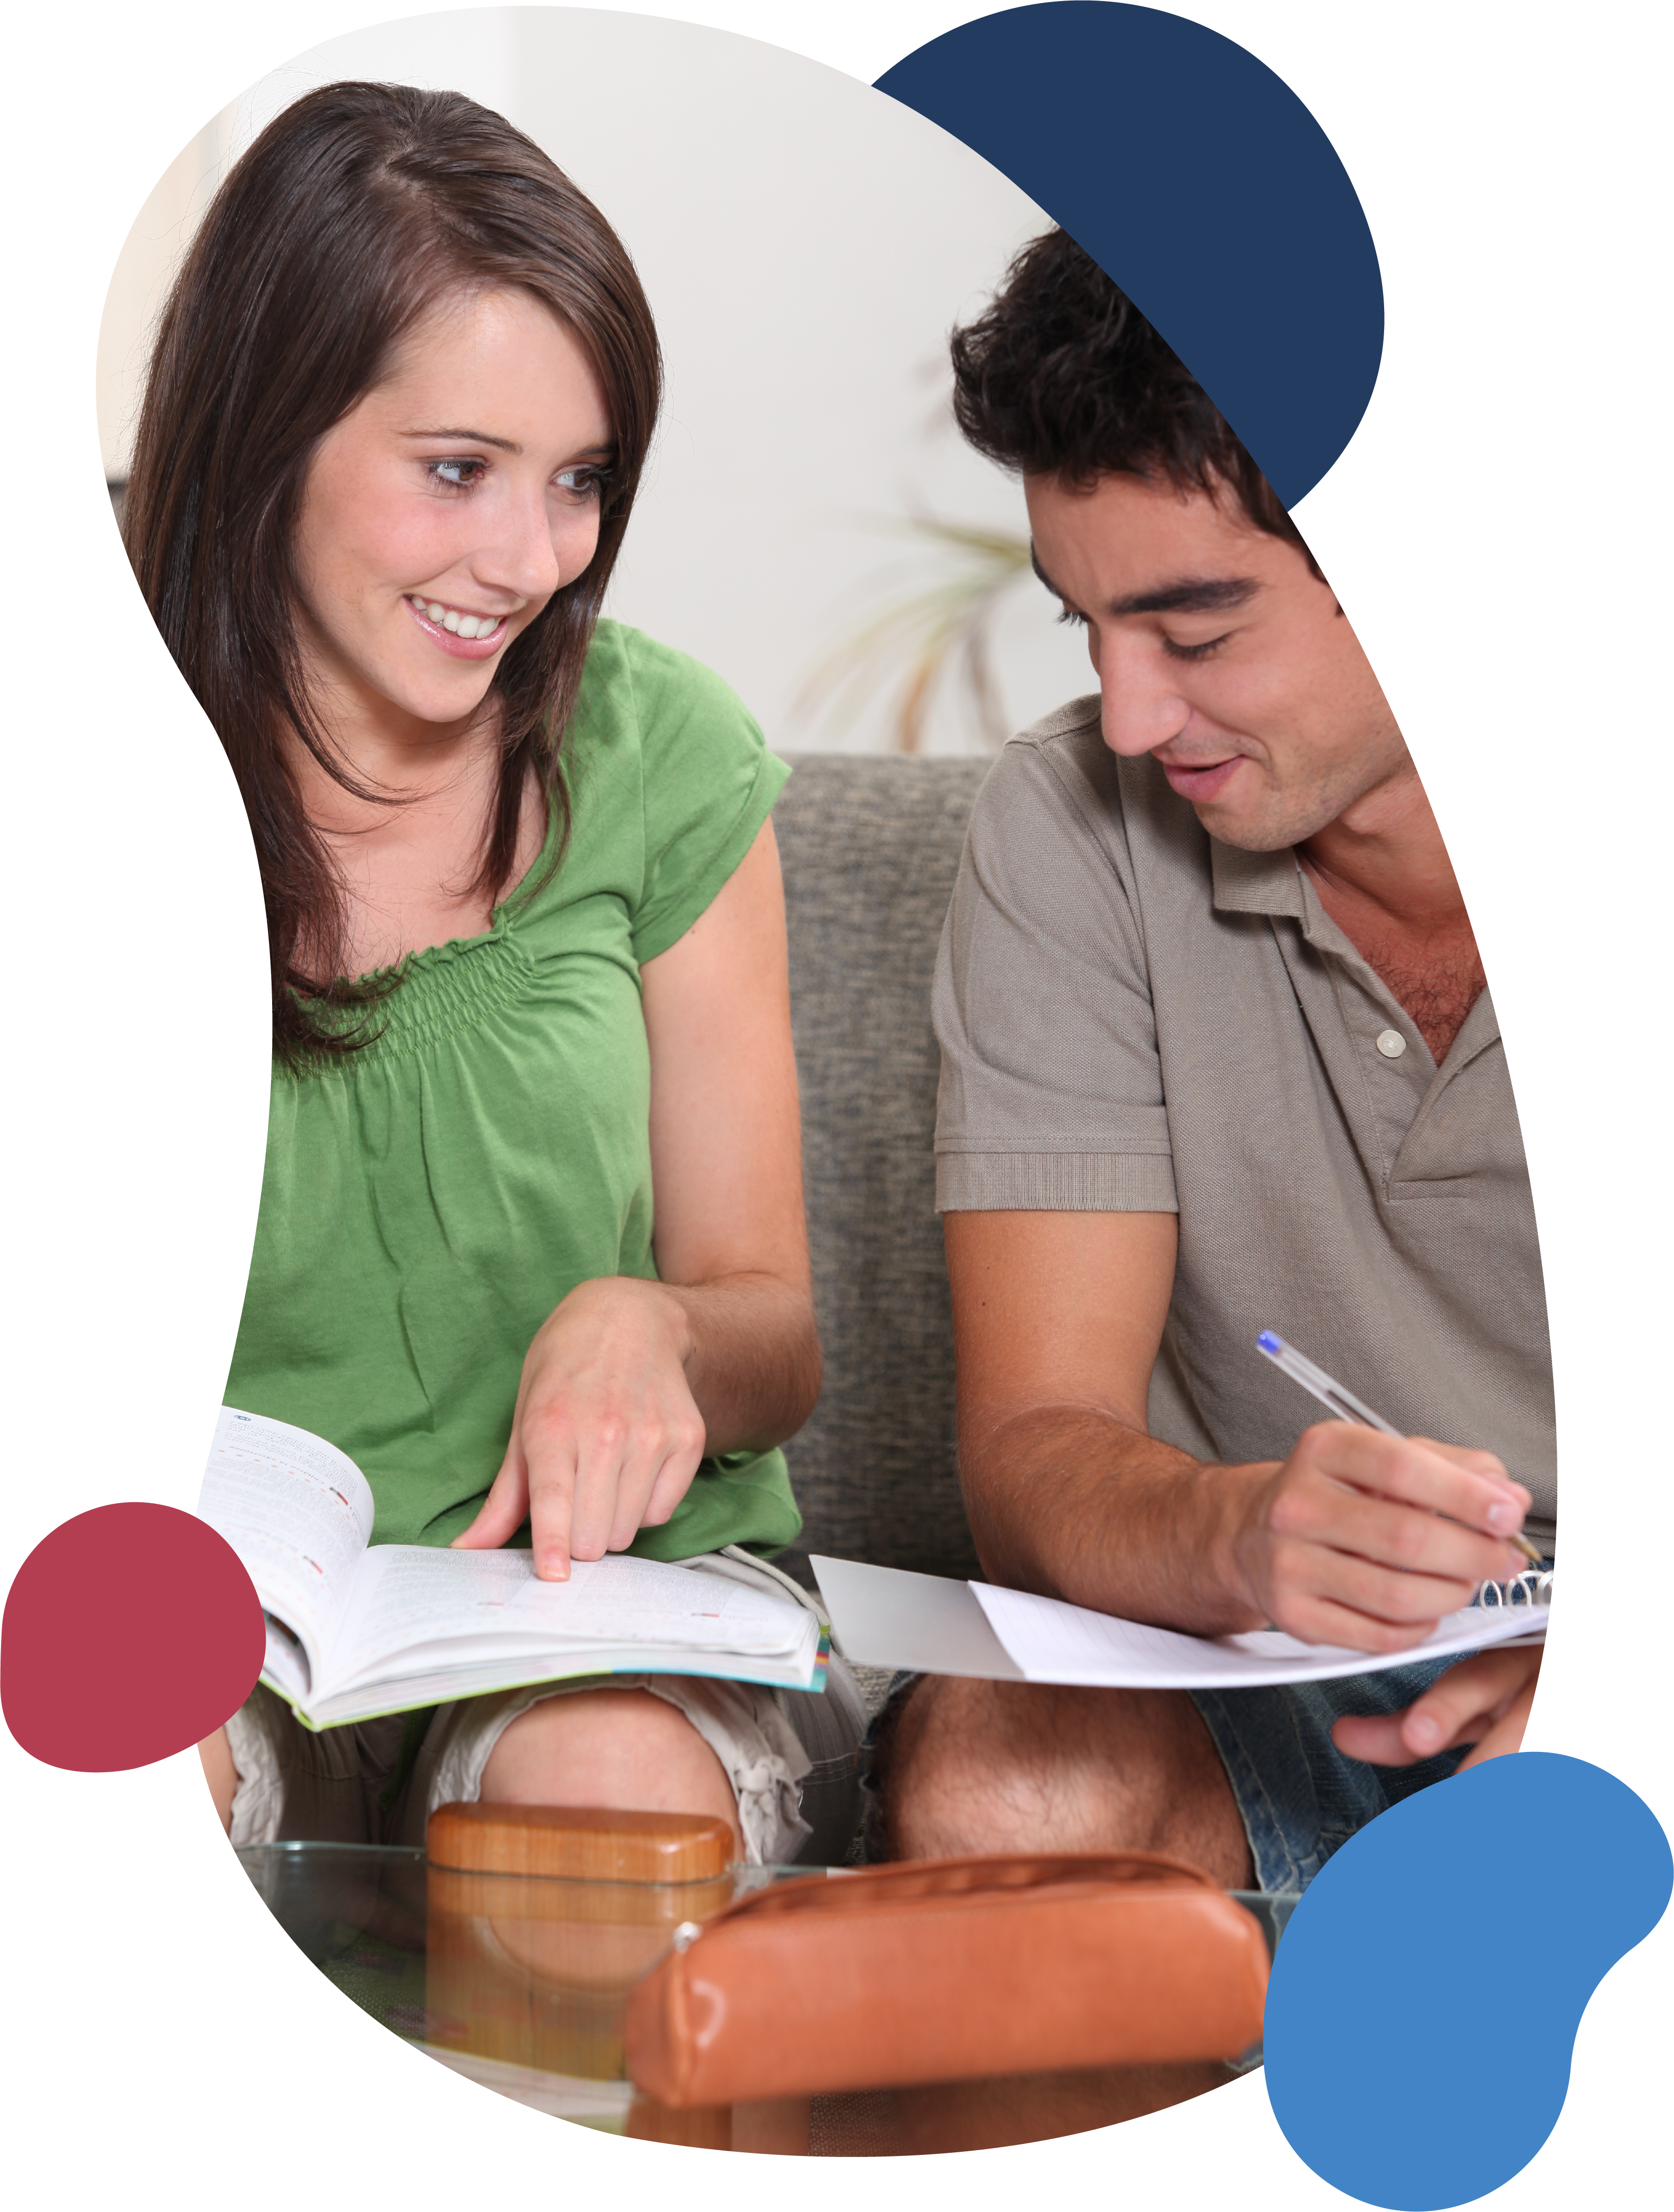 cours anglais particuliers